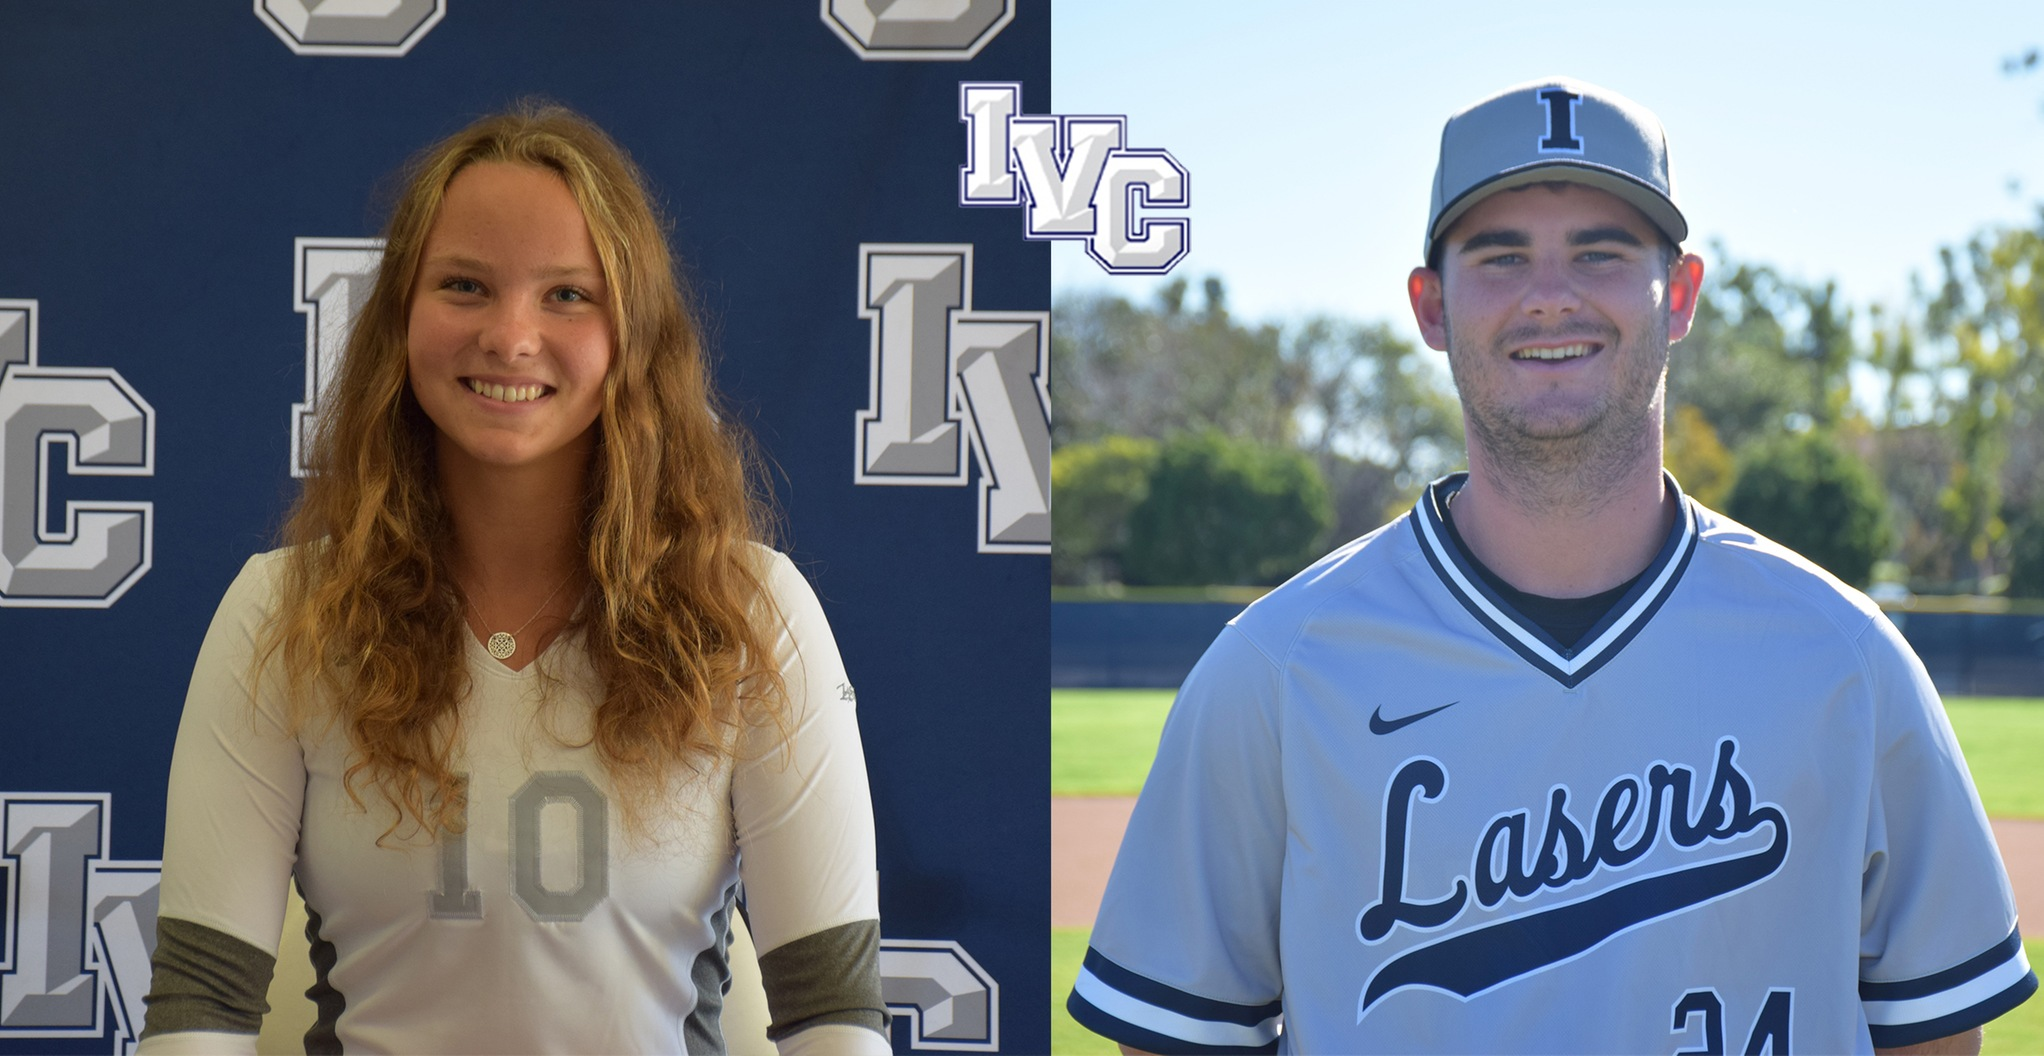 Kruse and Dobson selected IVC athletes of the year for 2018-19